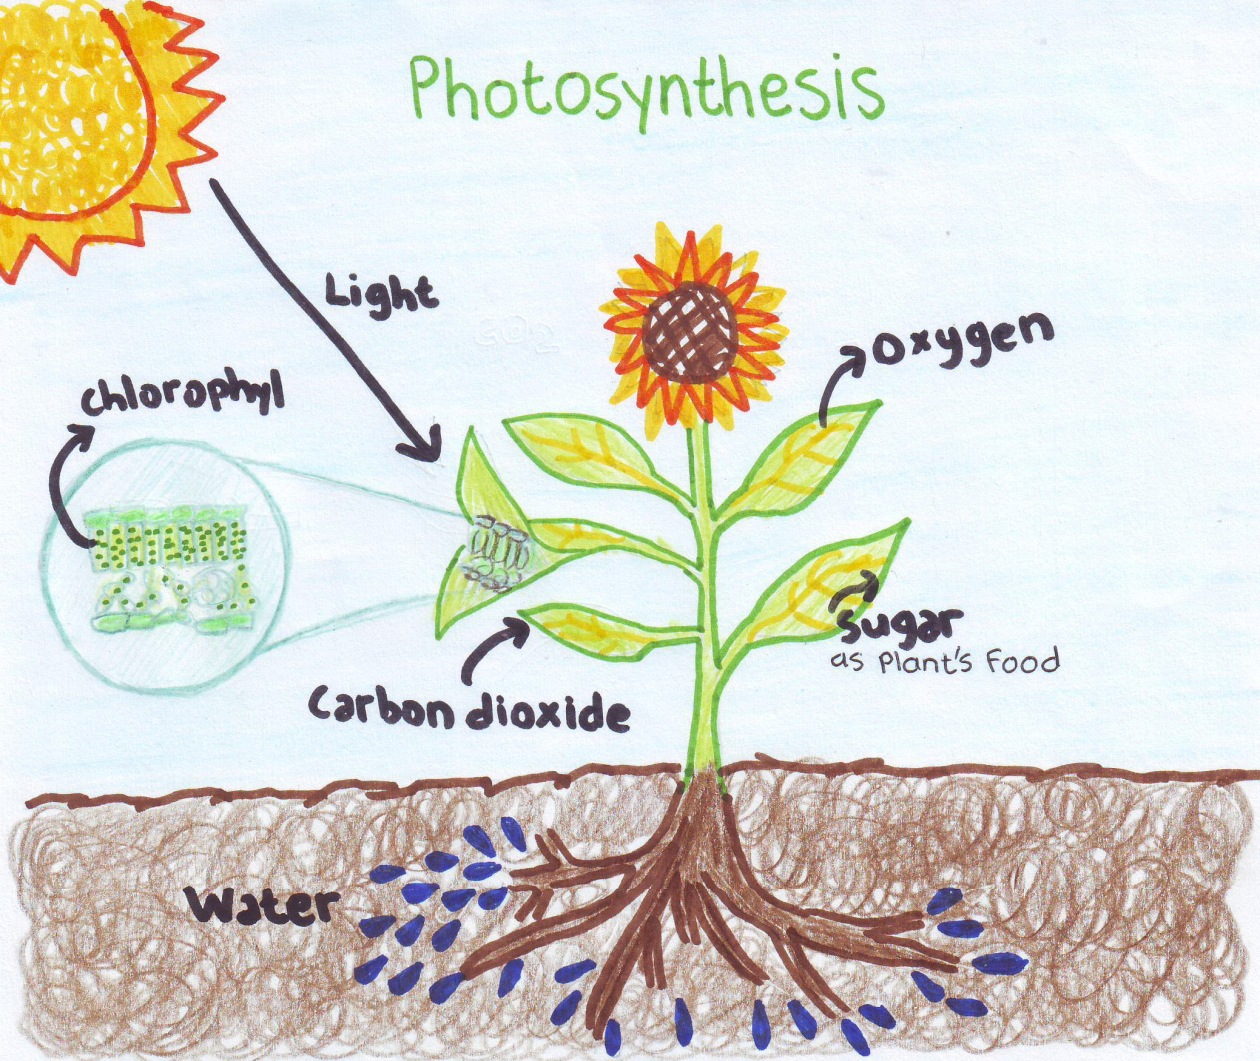 Photosynthesis, Chloroplast Learn Science at Scitable - Nature What happens to carbon dioxide during photosynthesis